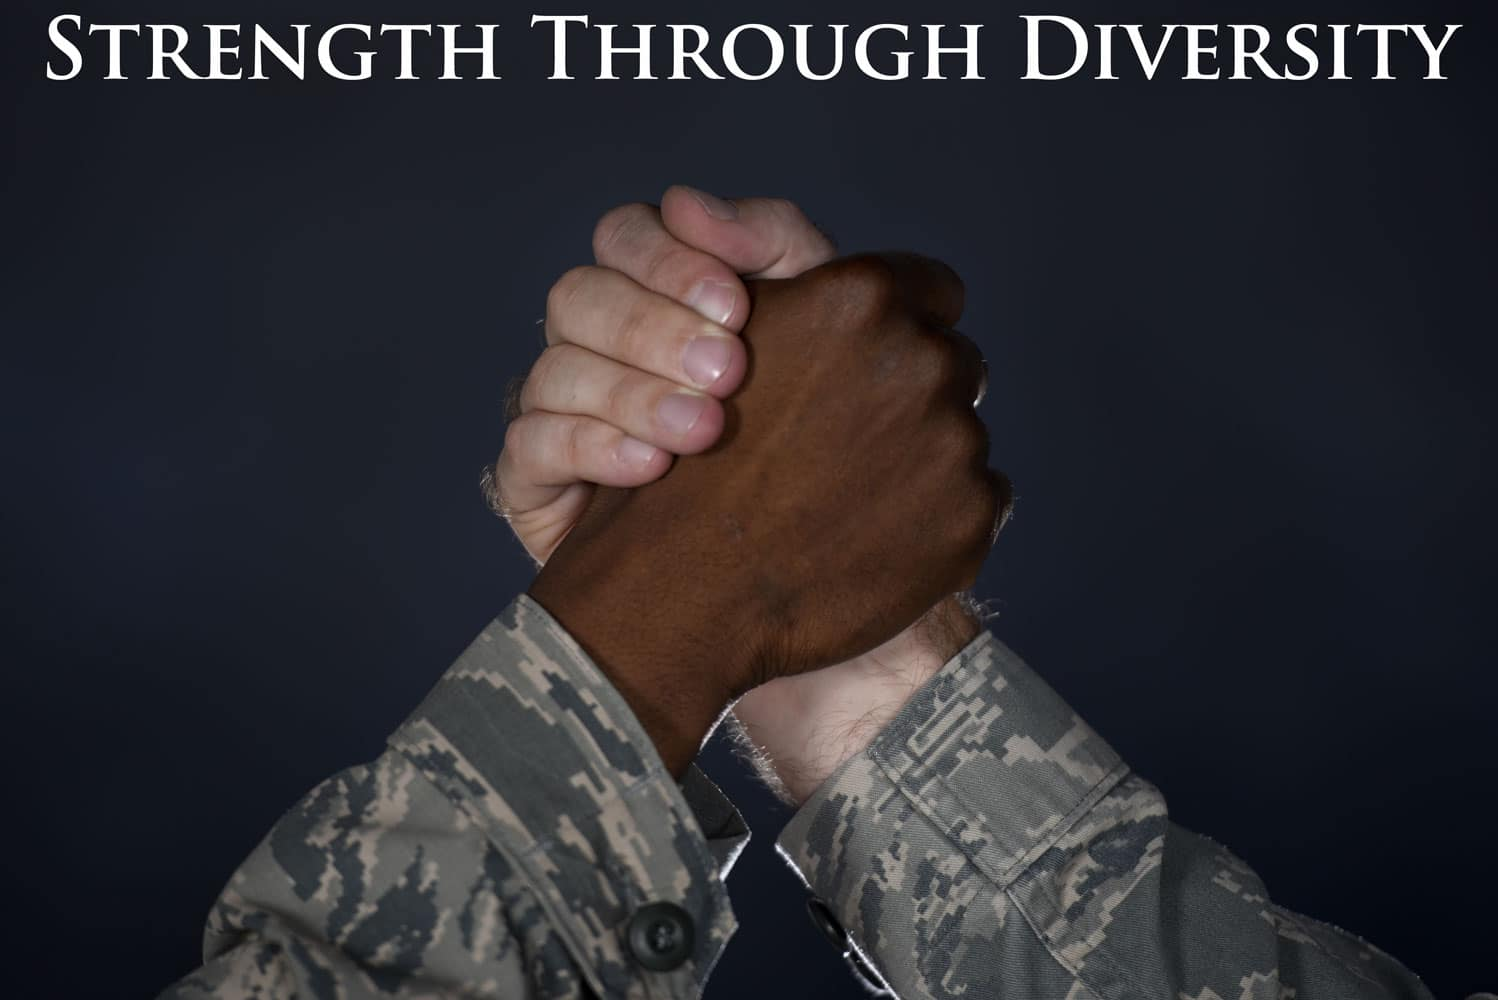 Cultural differences provide our nation a natural advantage, if we employ it. Every Airman - military or civilian; active, Guard or Reserve - brings unique sets of skills and perspectives to the team, growing better leaders who counter threats and provide a strategic advantage over adversaries.